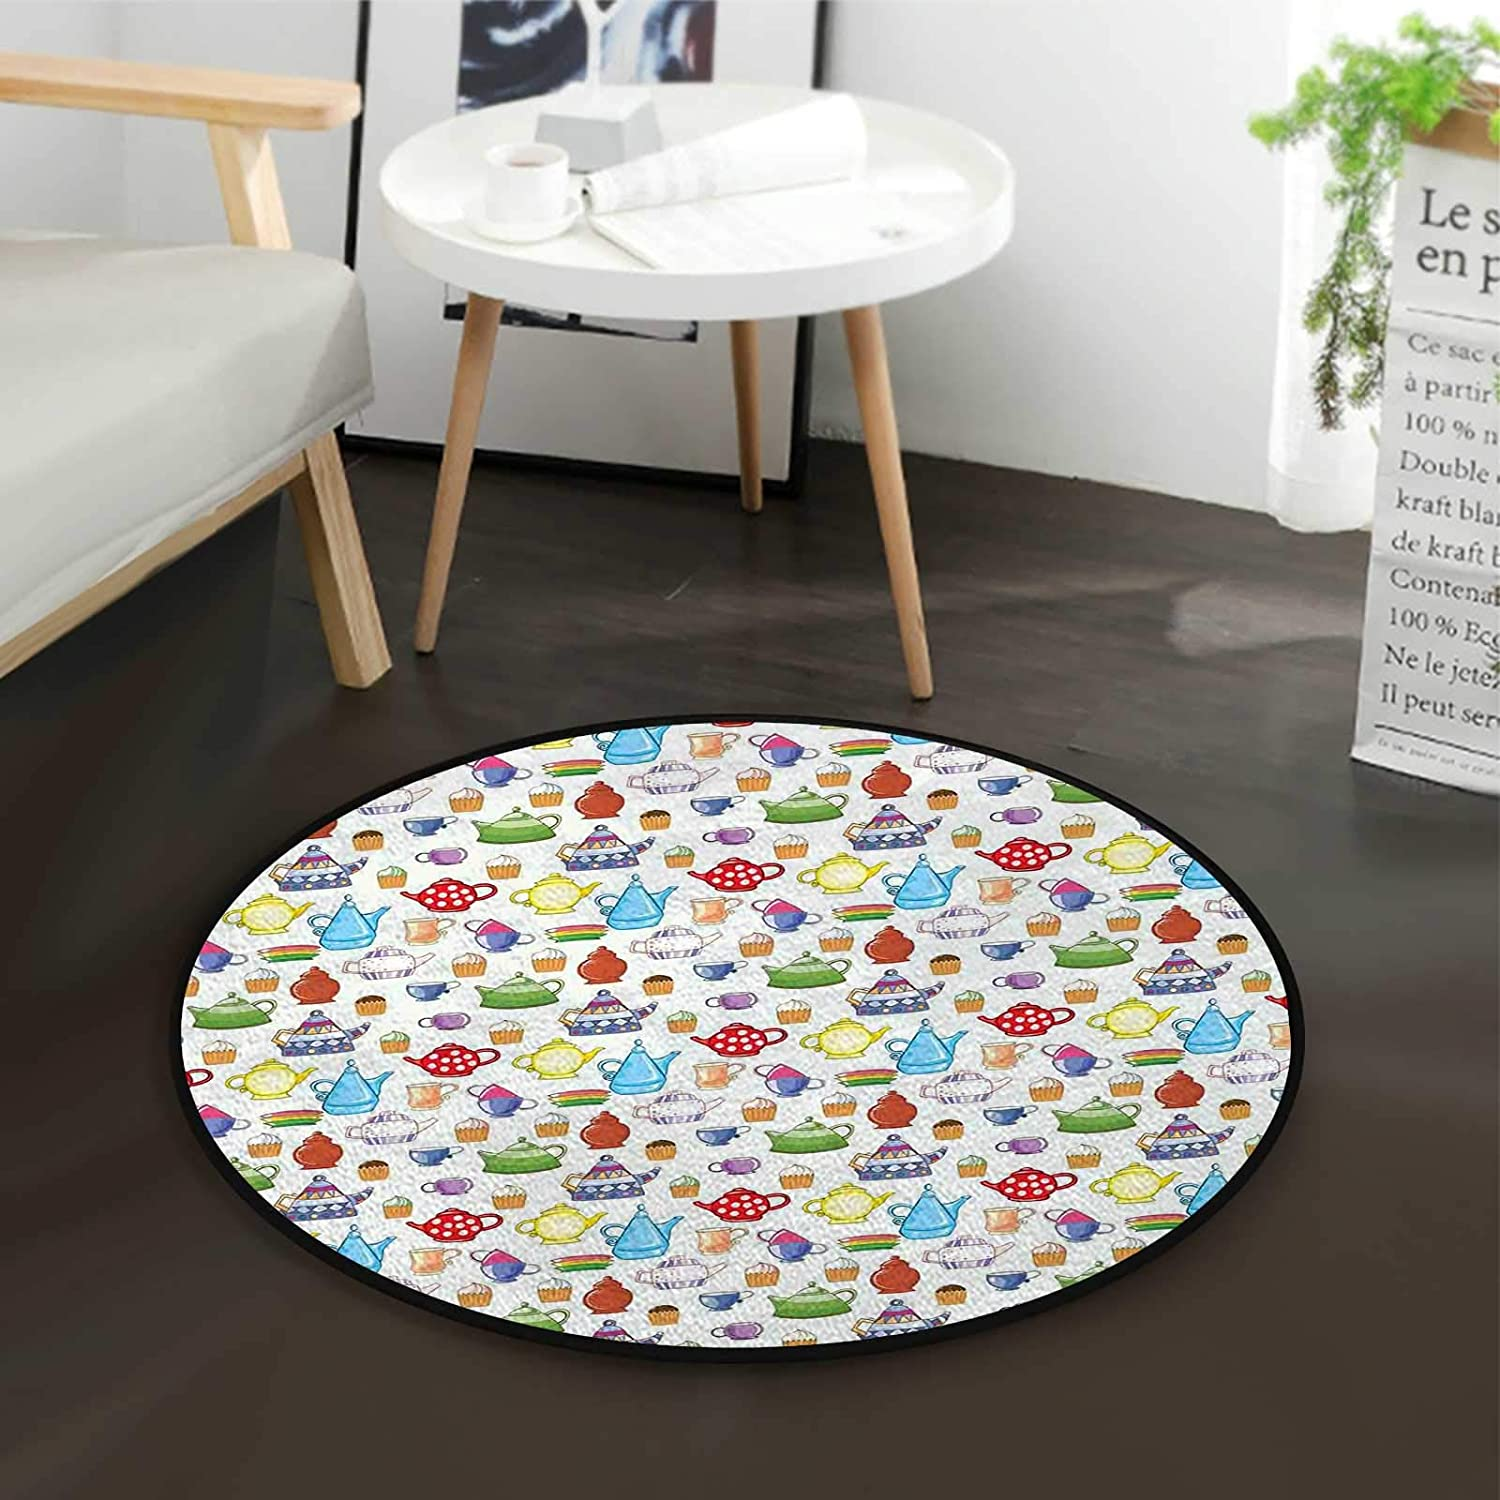 Bakery Goods Yummy Manufacturer regenerated product Cakes Food Office Computer D Chair Courier shipping free shipping Mat Swivel